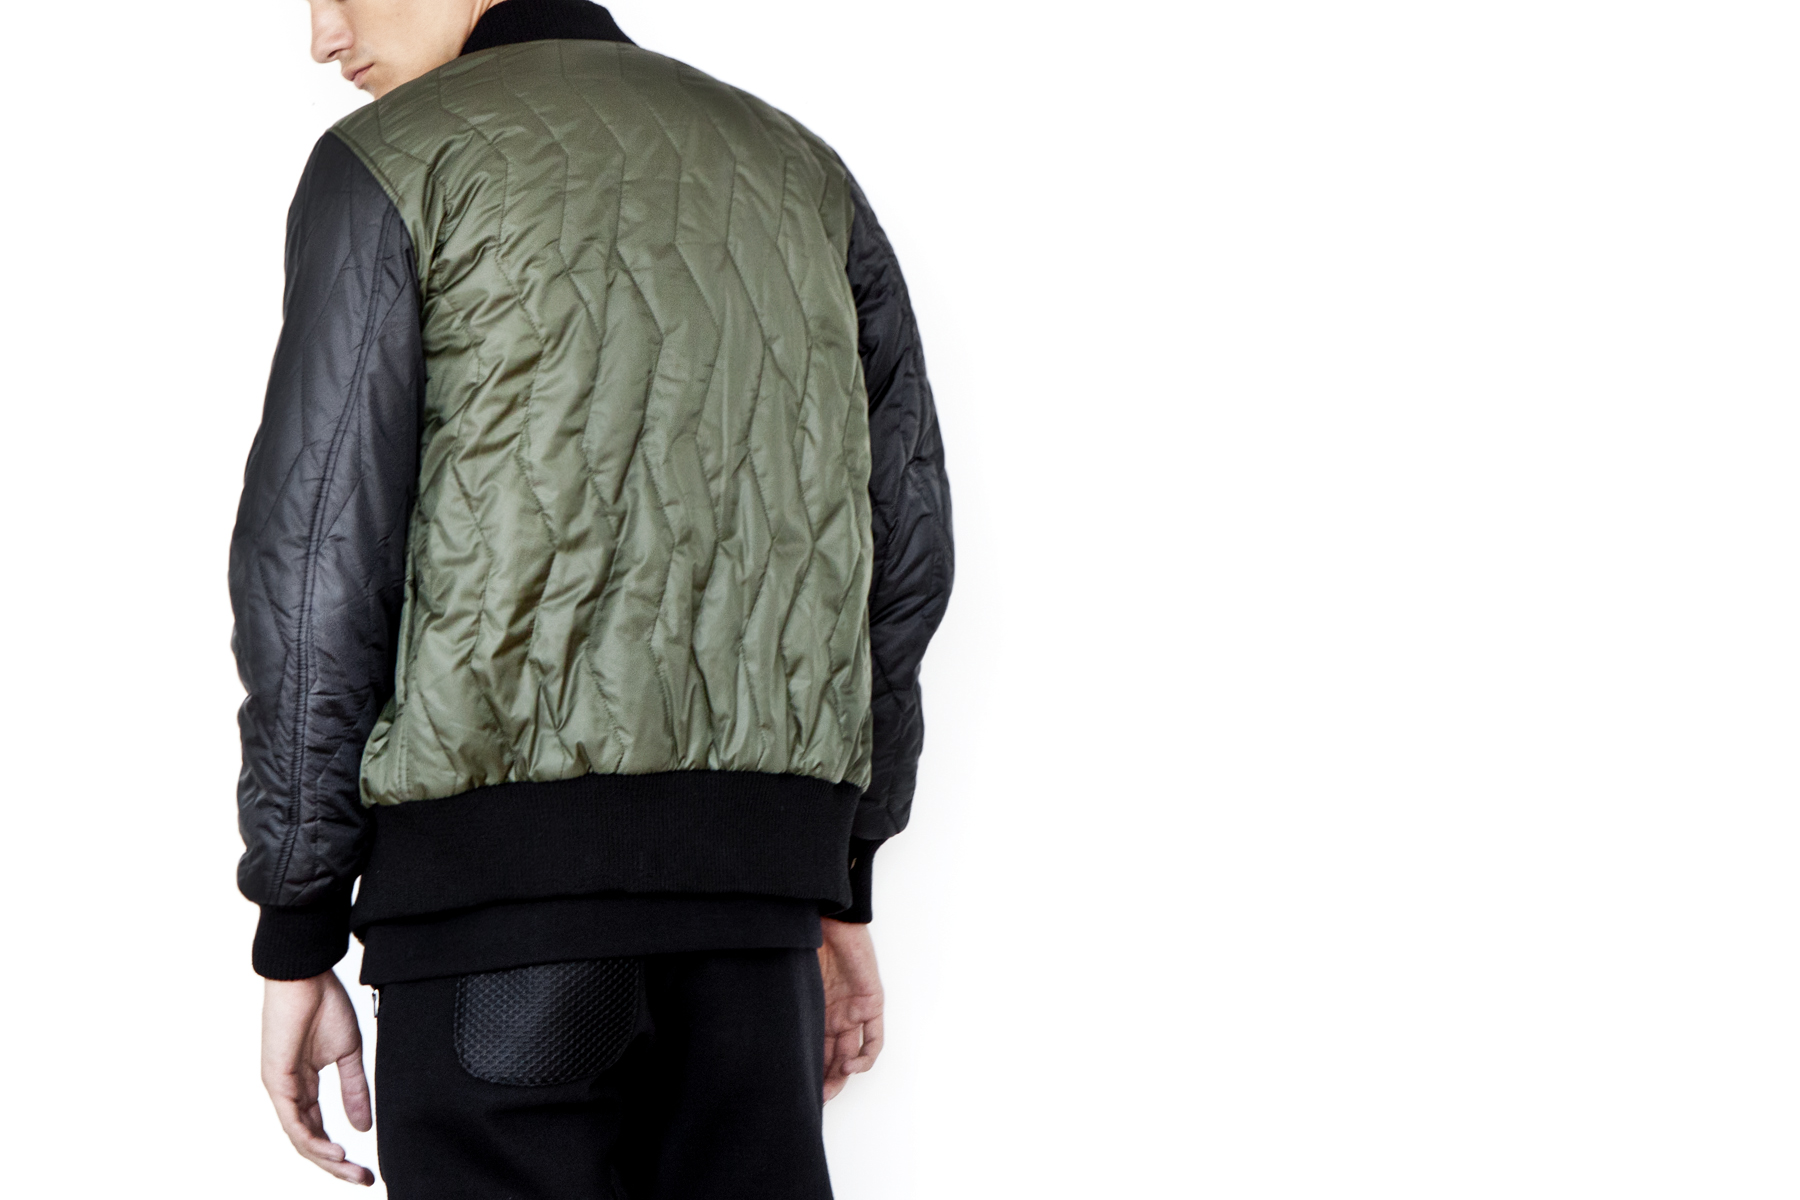 Christopher Raeburn 2014 Fall/Winter Collection